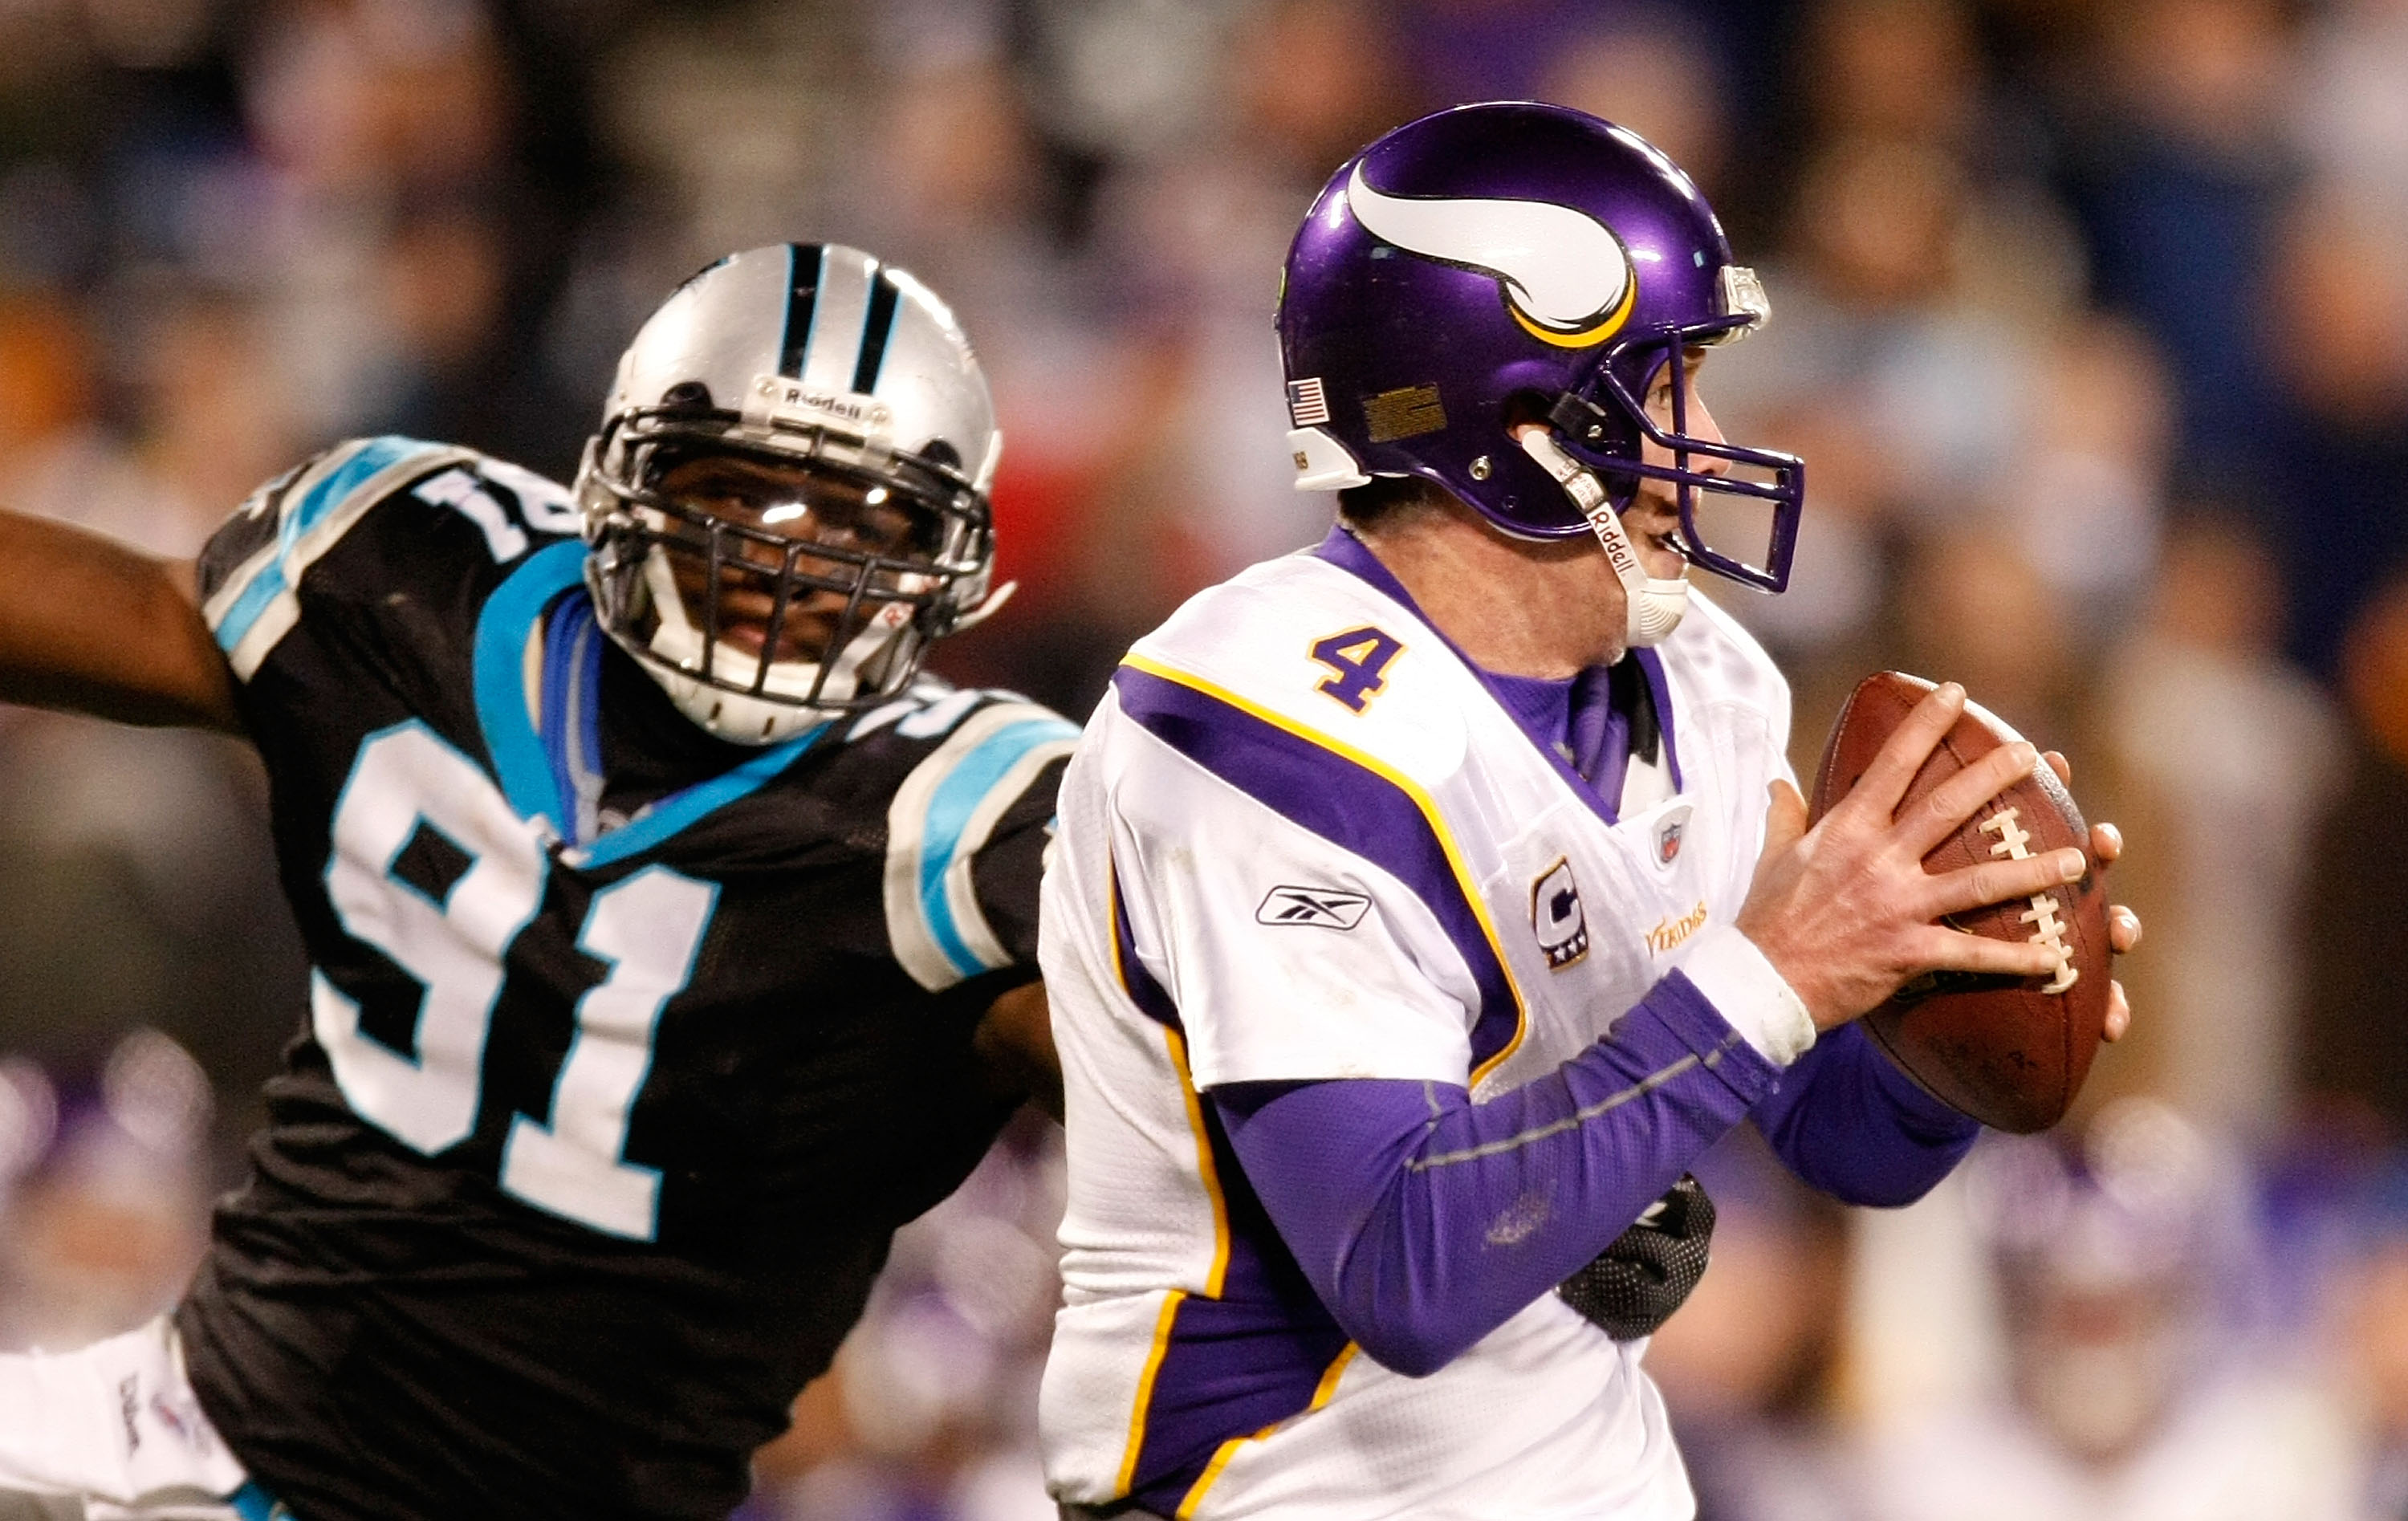 CHARLOTTE, NC - DECEMBER 20:  Quarterback Brett Favre #4 of the Minnesota Vikings is pressured by Everette Brown #91 of the Carolina Panthers at Bank of America Stadium on December 20, 2009 in Charlotte, North Carolina.  (Photo by Kevin C. Cox/Getty Image